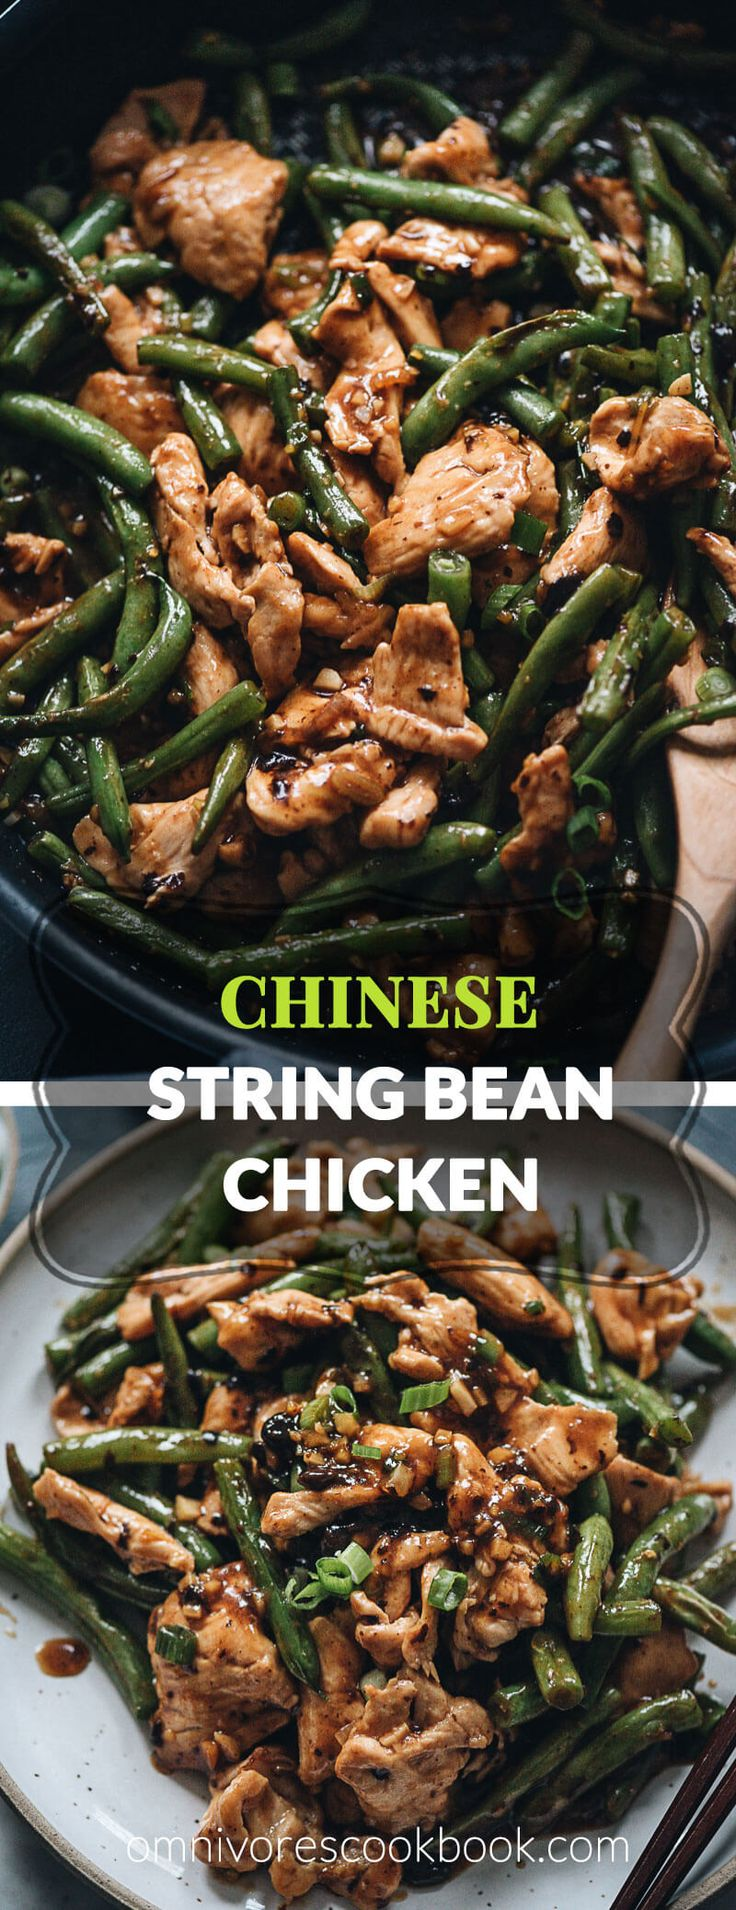 String bean chicken – This takeout string bean chicken is so easy to make and pe…